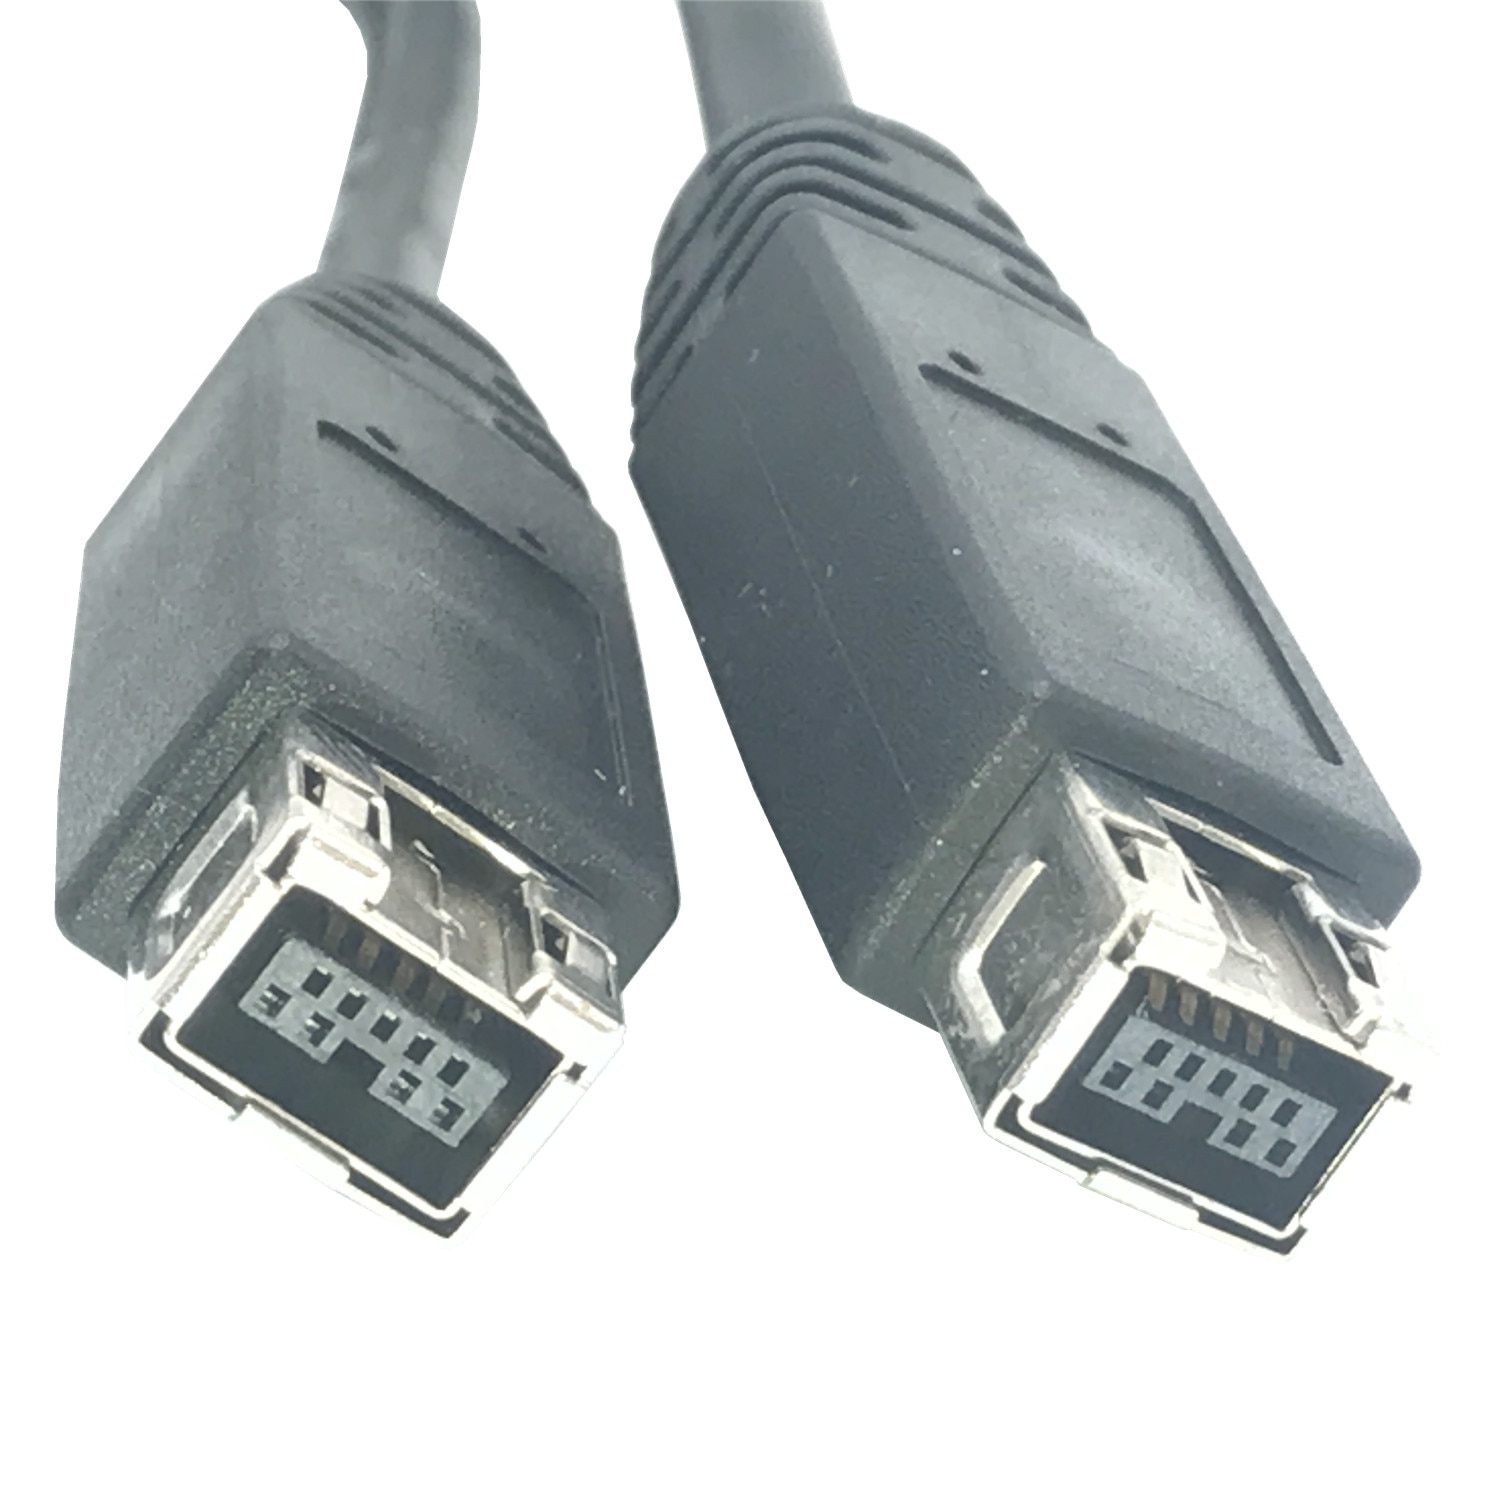 IEEE 1394 Firewire 800 a Cable Firewire 800 9 p 9 p...